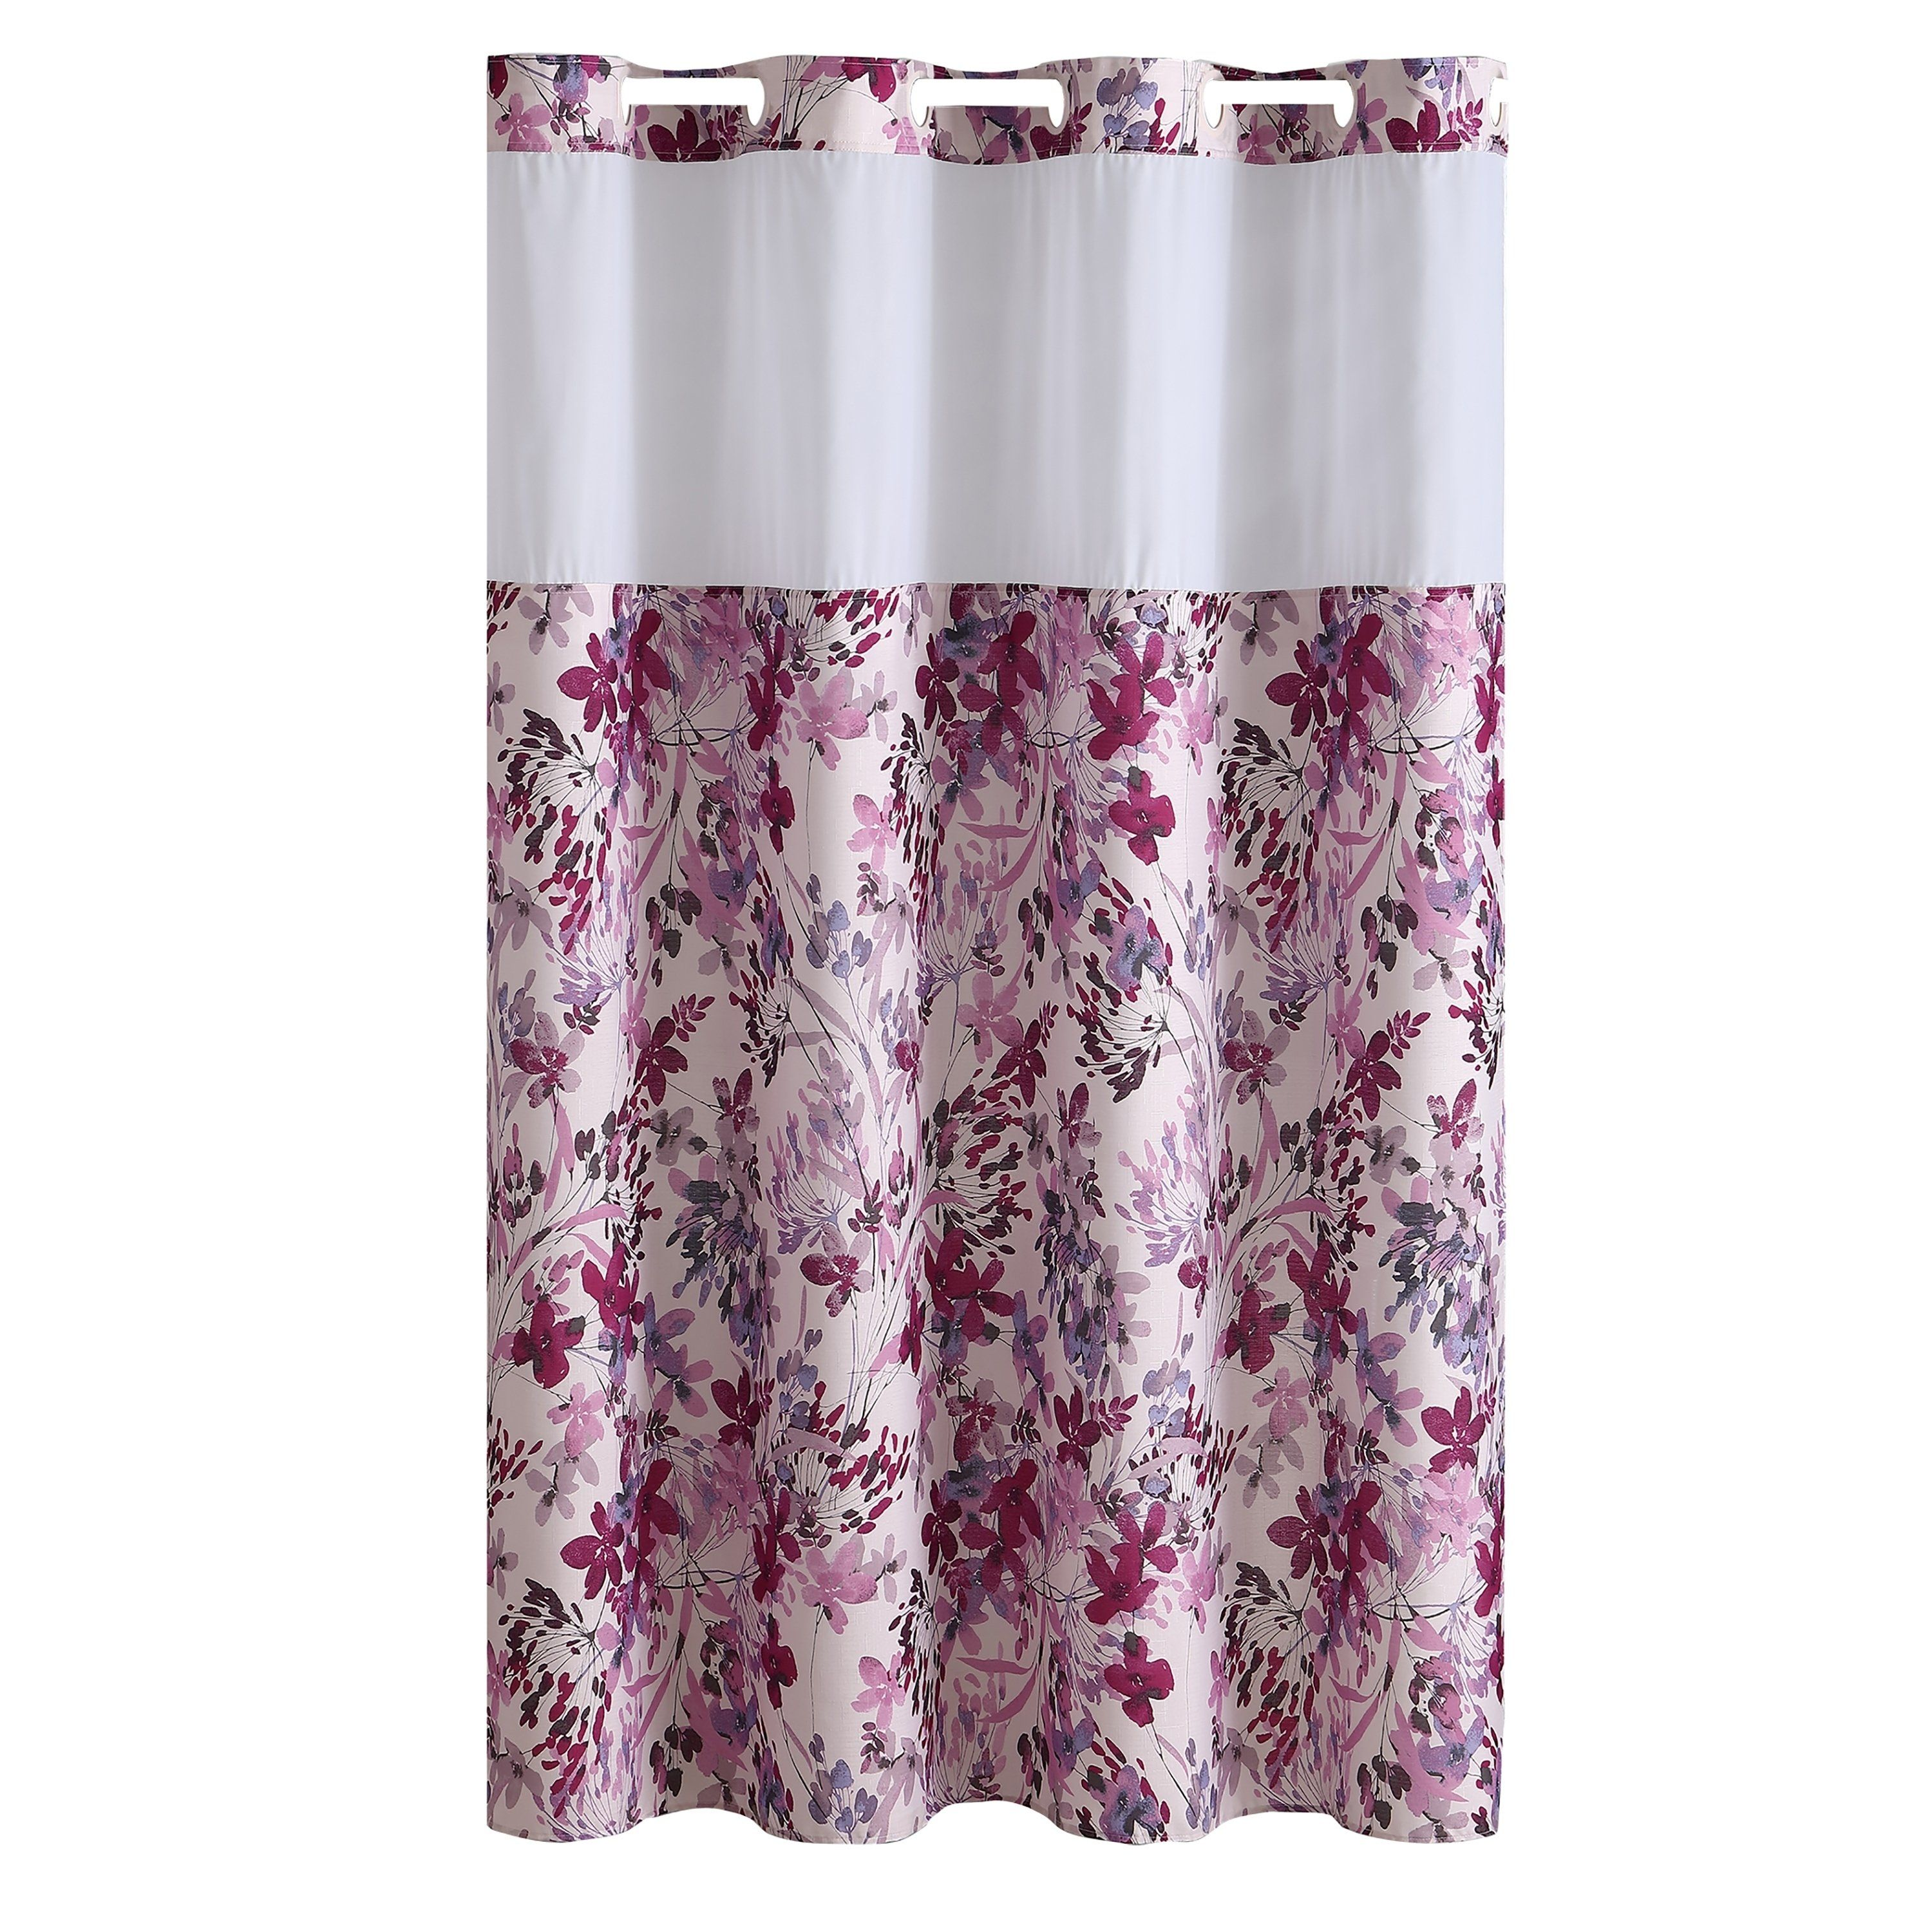 Hookless Shower Curtain Water Color Floral Print Fuchsia Pink